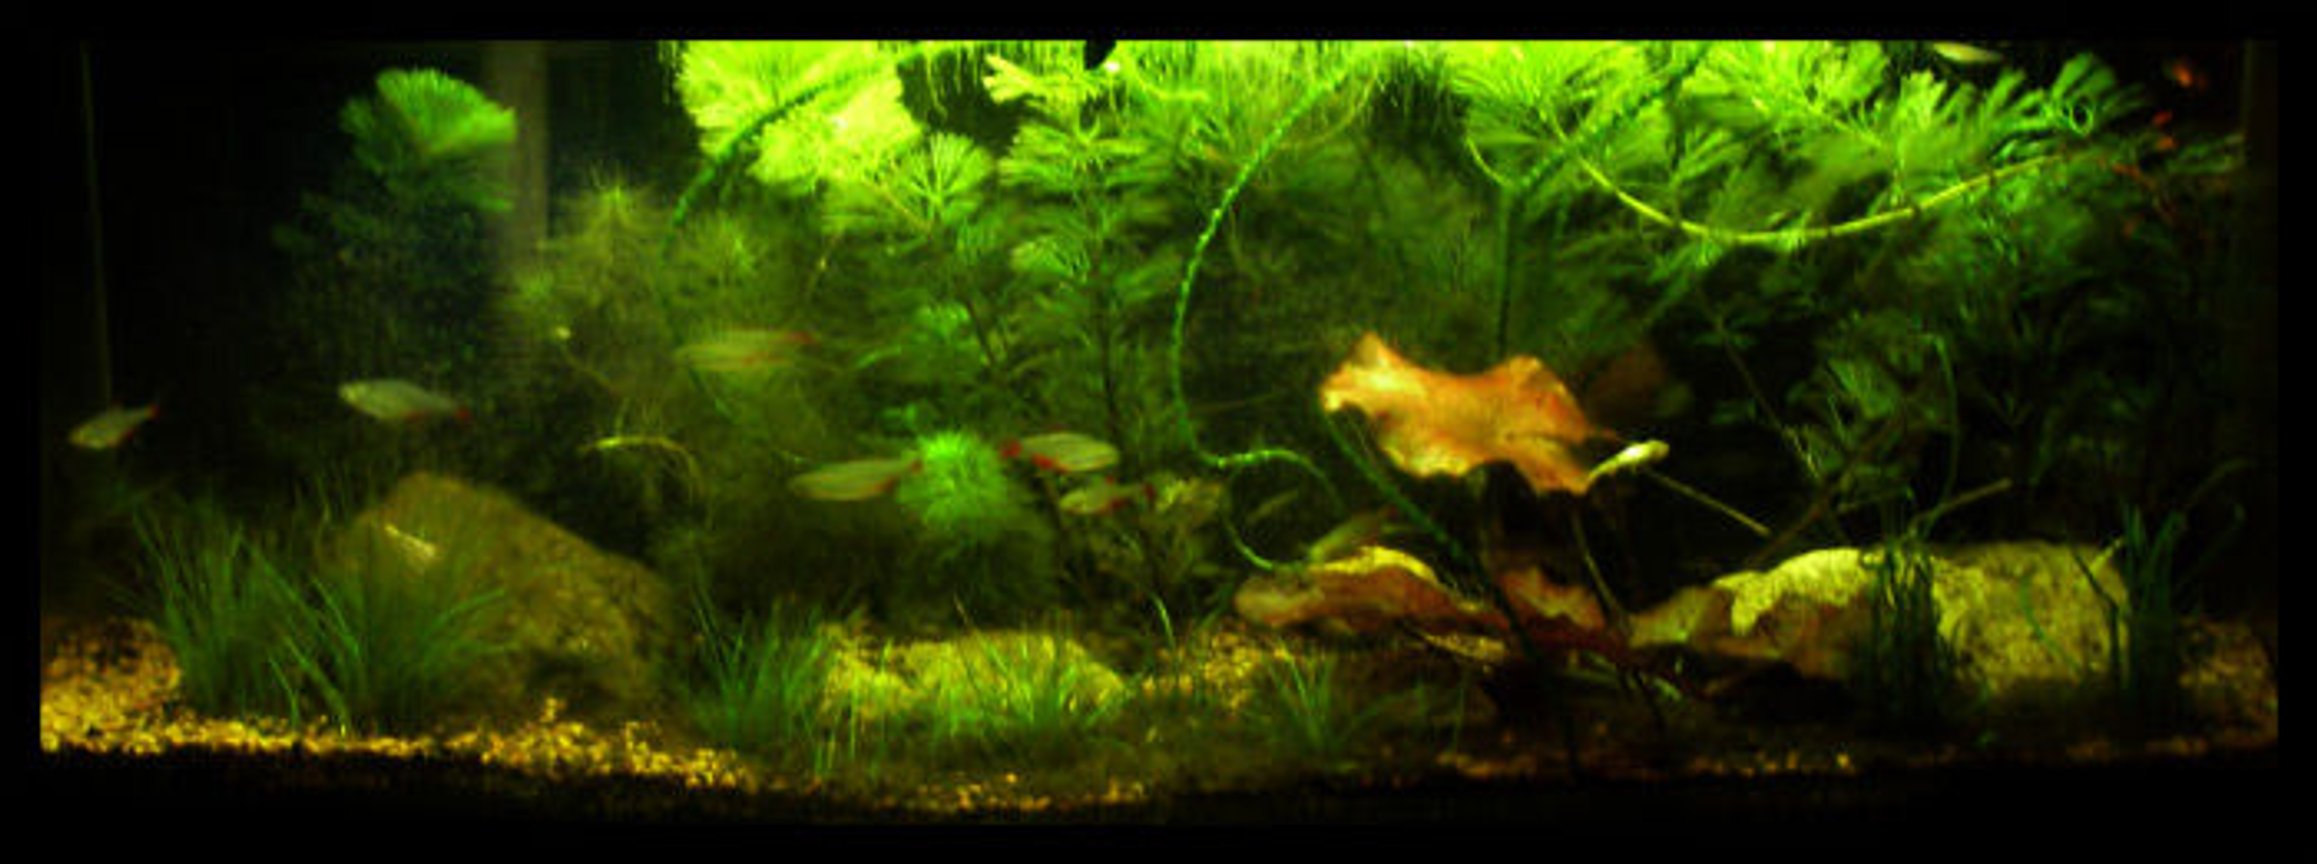 5 gallons planted tank (mostly live plants and fish) - 5-5 gallon planted, red tiger lotus, duckweed, cambodia, dwarf hairgrass, chainsword, green minifoil, ruffle leaf crinium